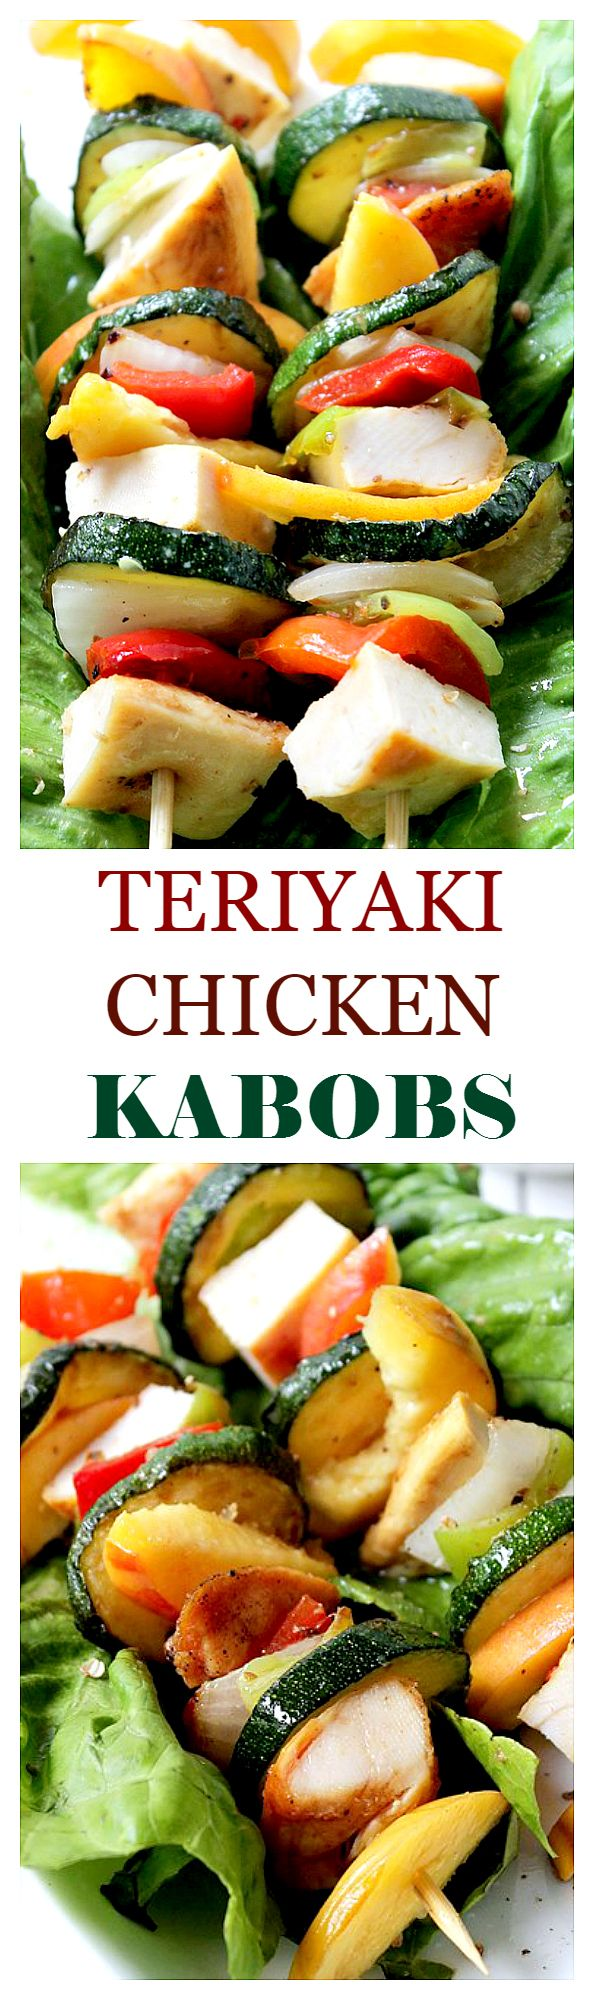 Teriyaki Chicken Kabobs - My family absolutely loved this recipe. My husband said it was the best chicken marinade he has ever had. It is light, tasty and delicious! Get the recipe on diethood.com